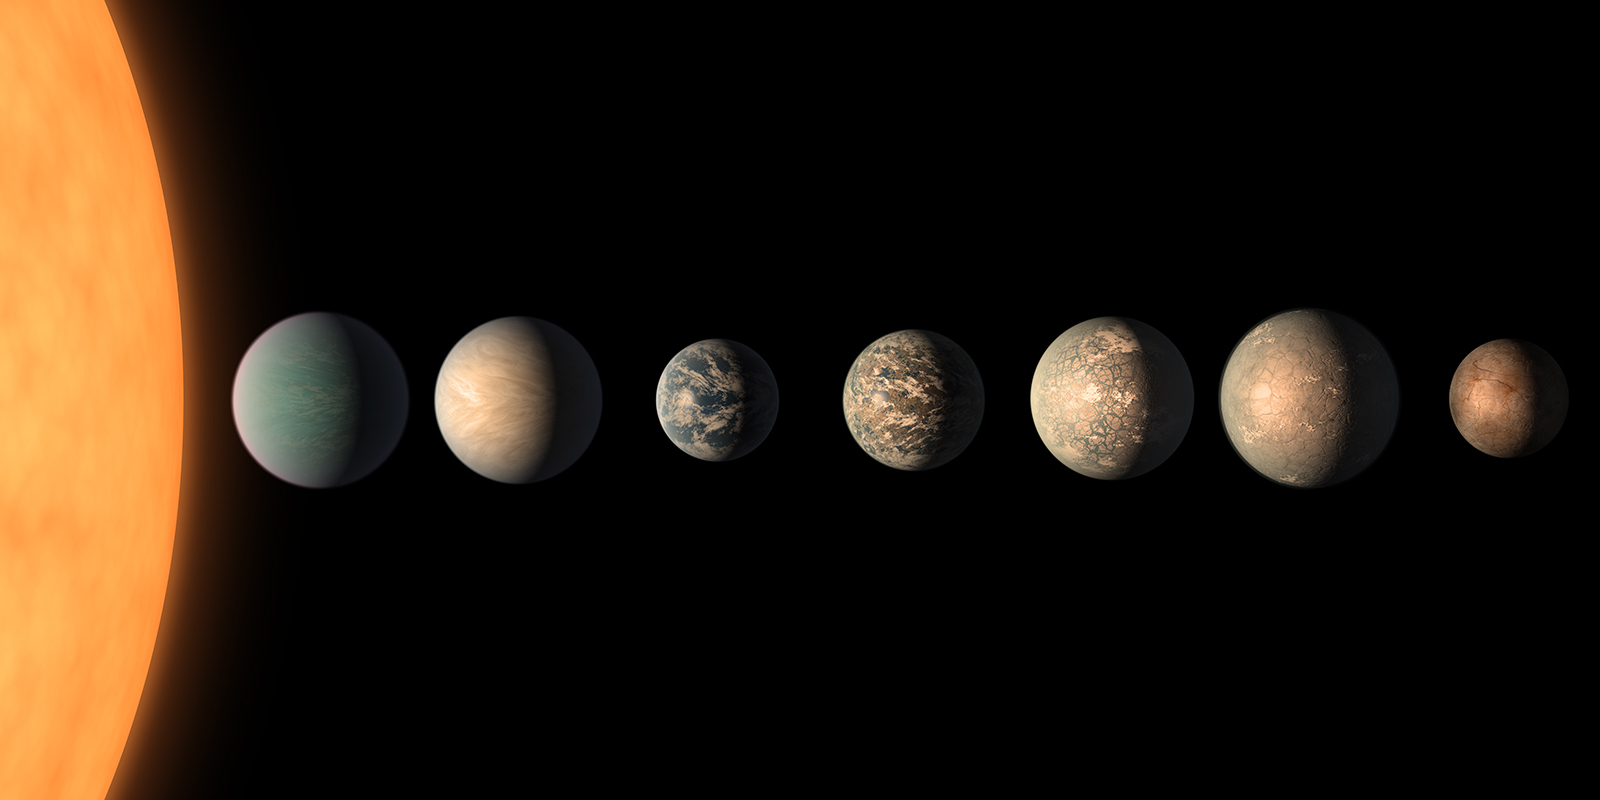 New Clues To Compositions Of Trappist 1 Planets